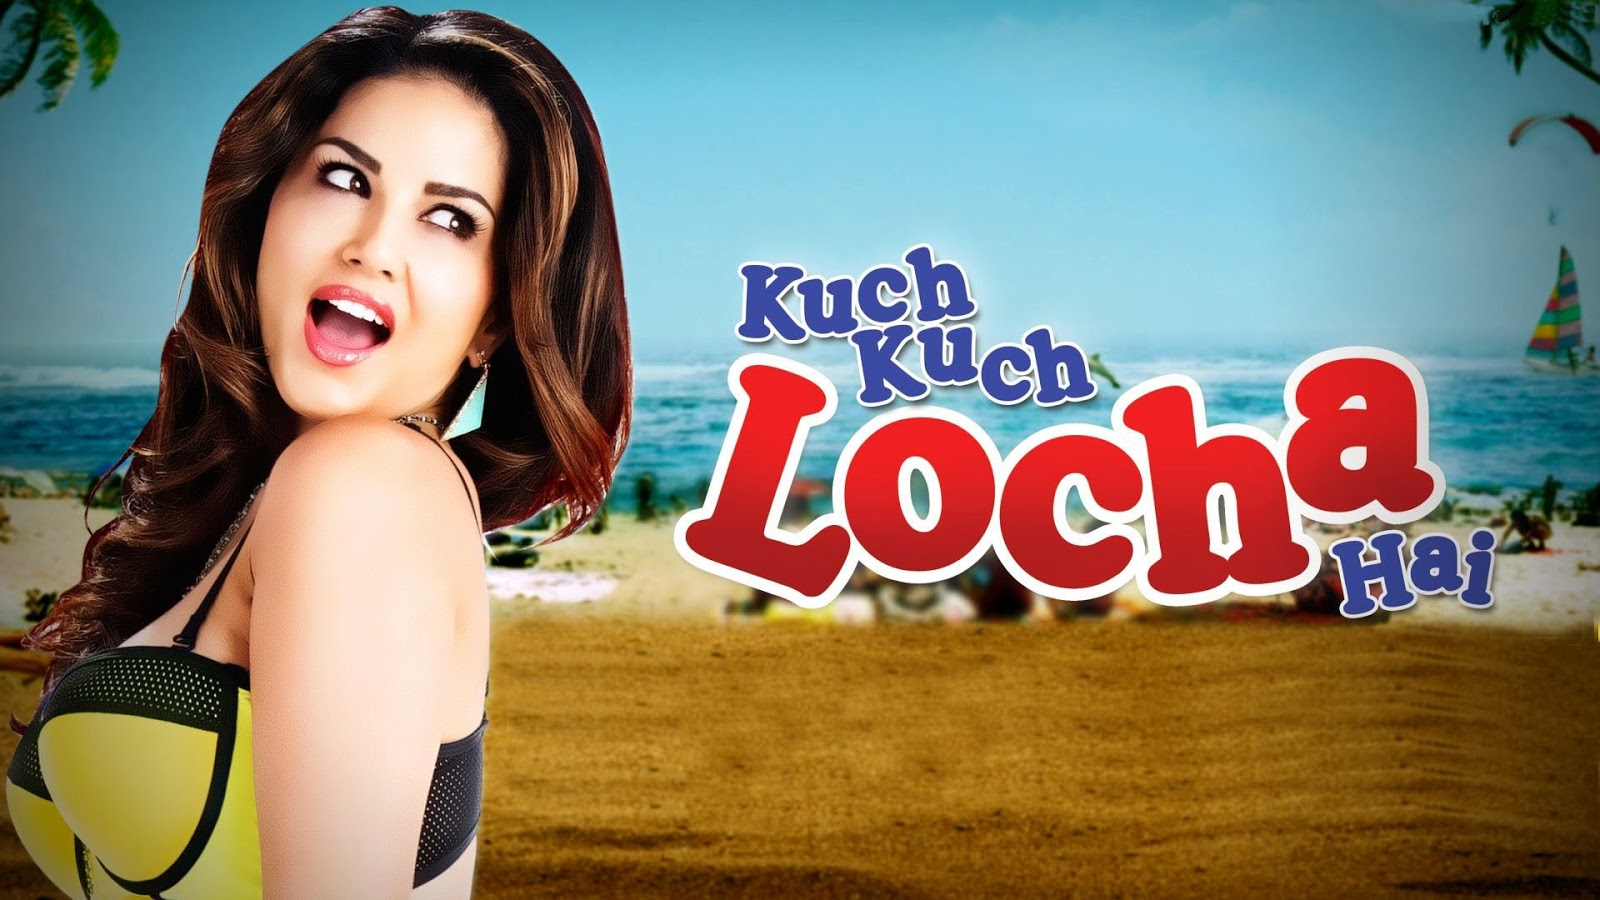 Box Office Collection of Kuch Kuch Locha Hai 2015 With Budget and Hit or Flop wiki, Sunny Leone, Ram Kapoor bollywood movie Kuch Kuch Locha Hai latest update income, Profit, loss on MT WIKI